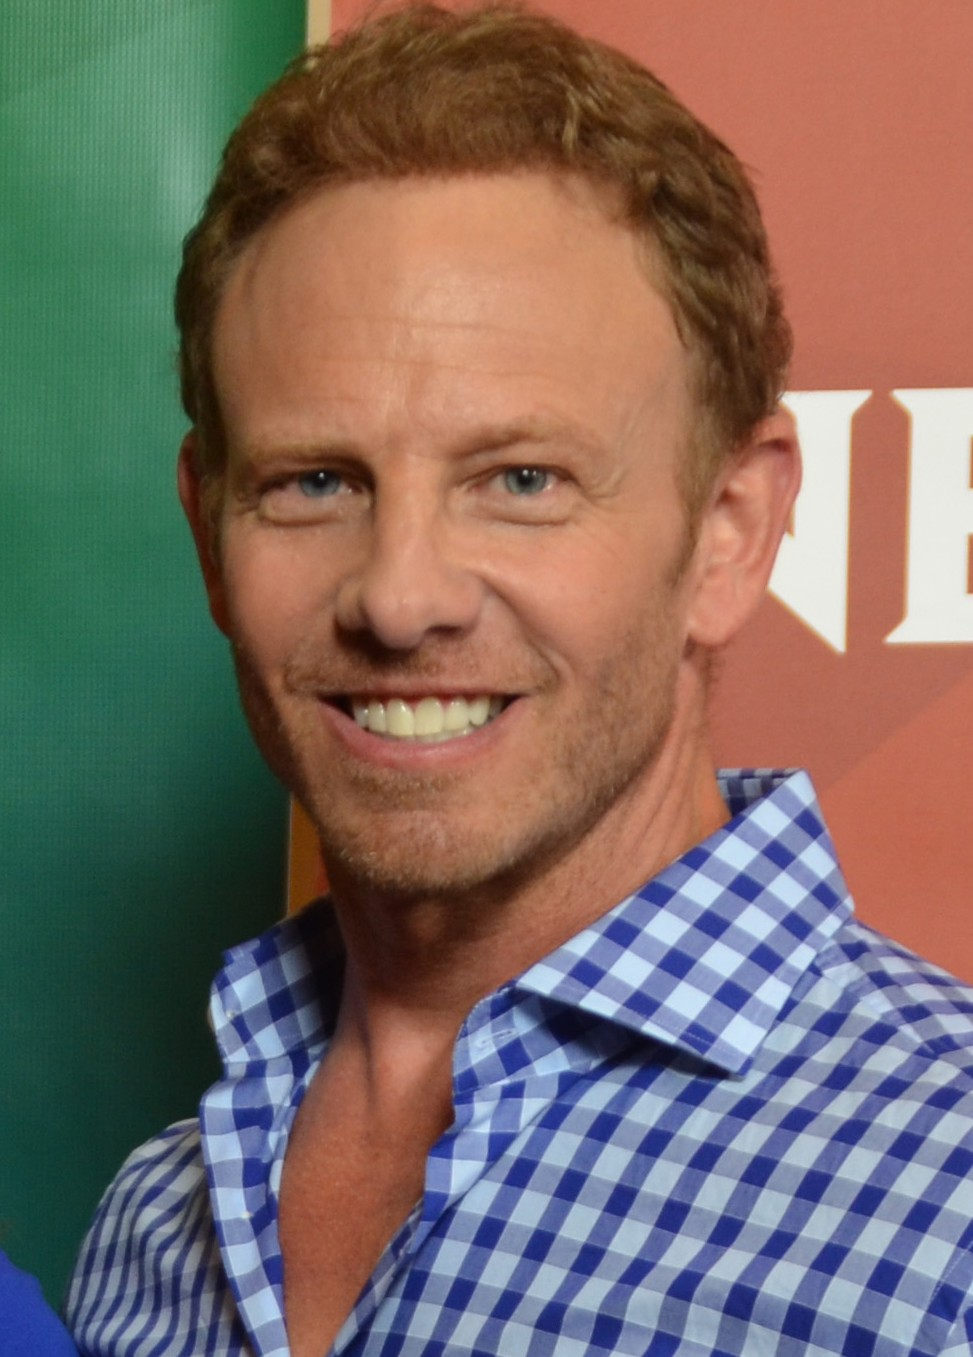 The 54-year old son of father Paul Ziering and mother Mickie Ziering Ian Ziering in 2018 photo. Ian Ziering earned a  million dollar salary - leaving the net worth at 8 million in 2018